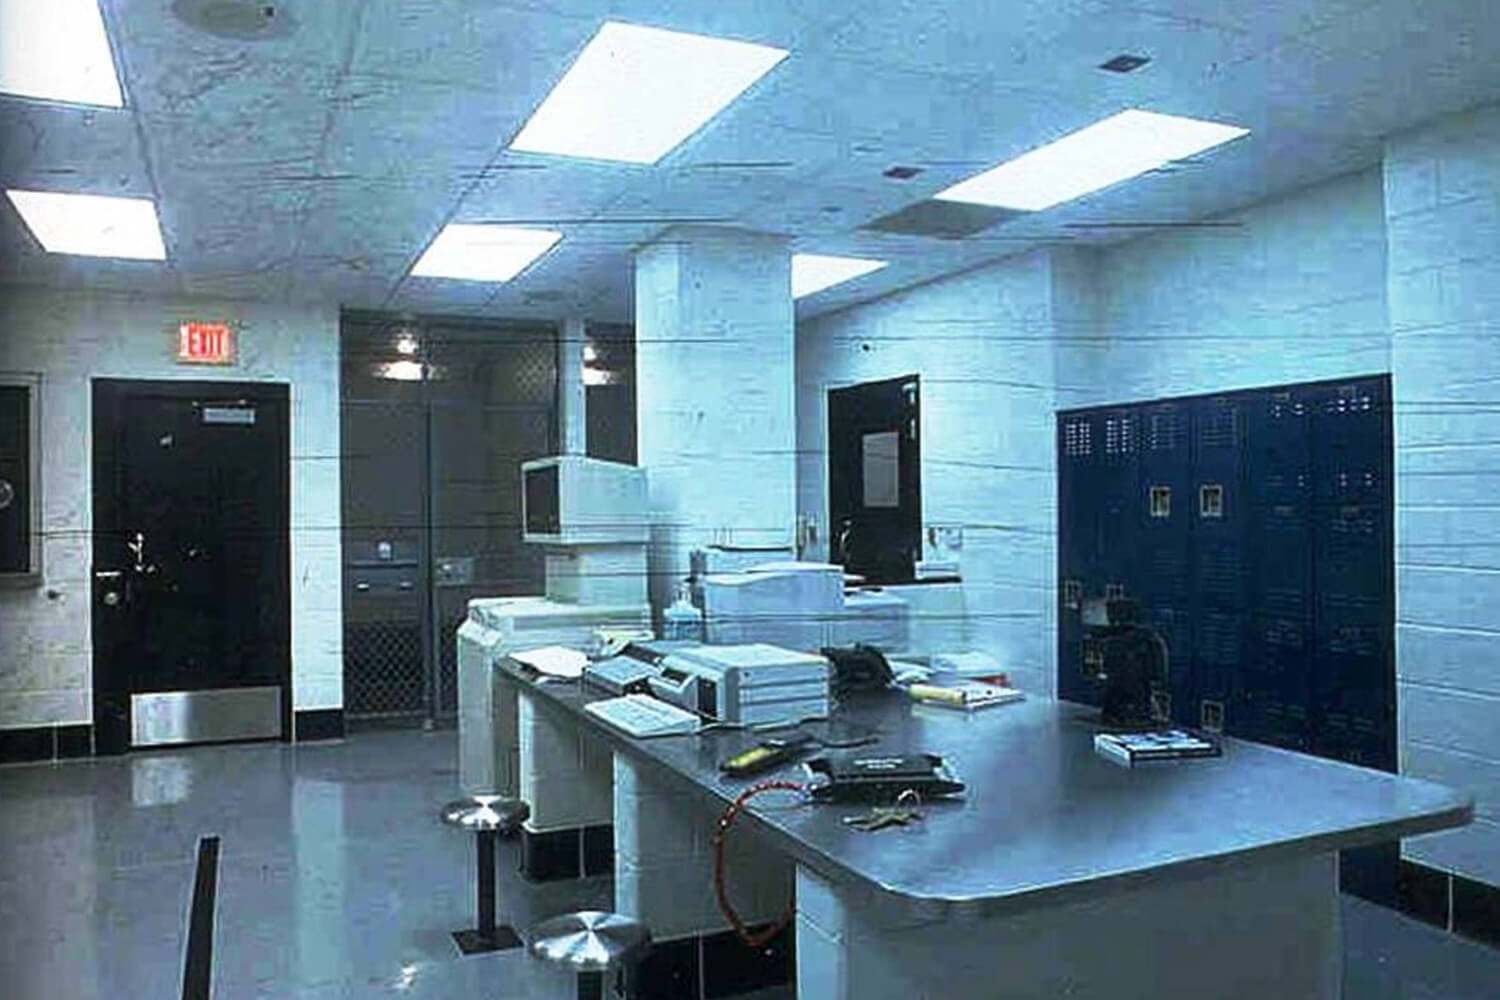 Barrington Public Safety Police and Fire Headquarters interior 2